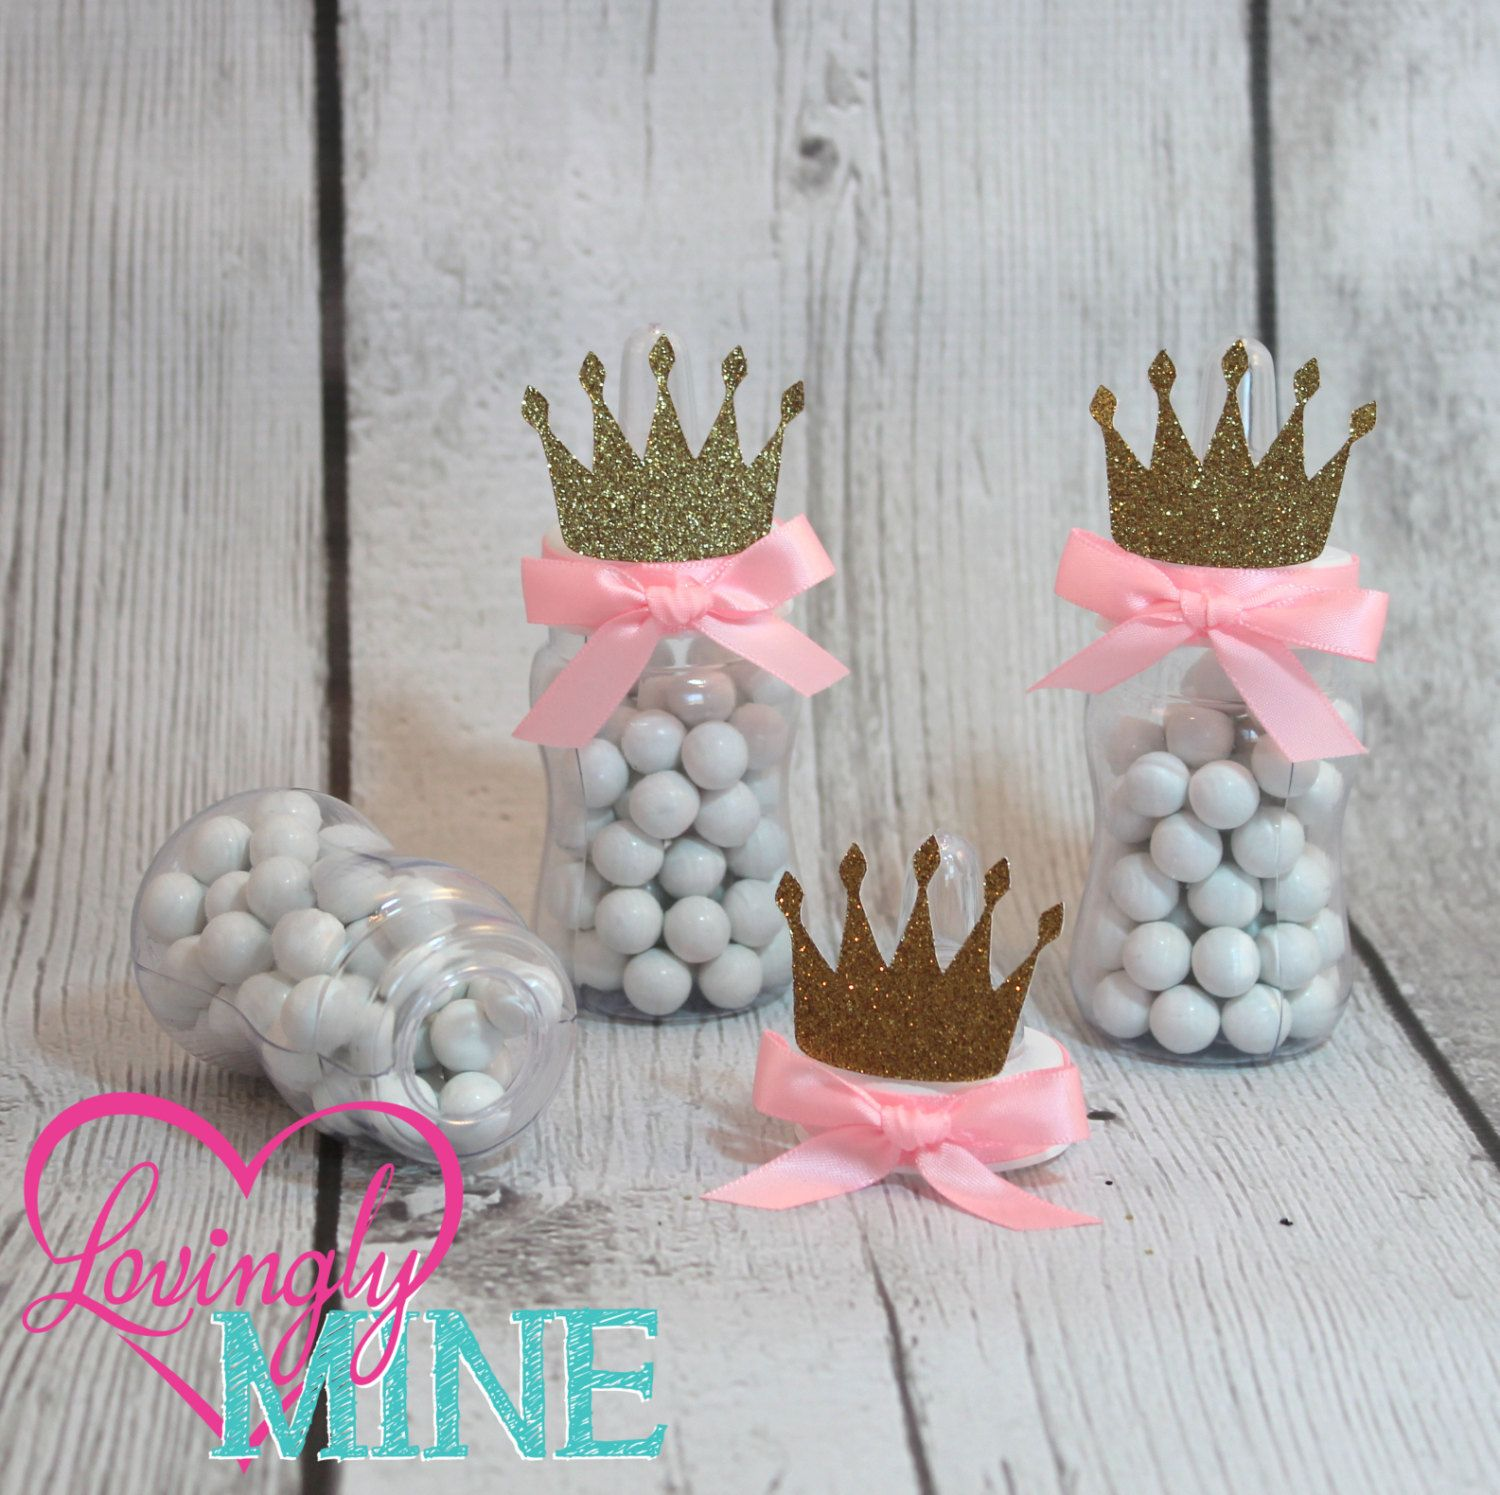 Little Princess Baby Bottle Favors in Baby Pink & Glitter Gold - Set of 12 - Baby Shower Thank You Gifts, Tiara, Crown by LovinglyMine on Etsy